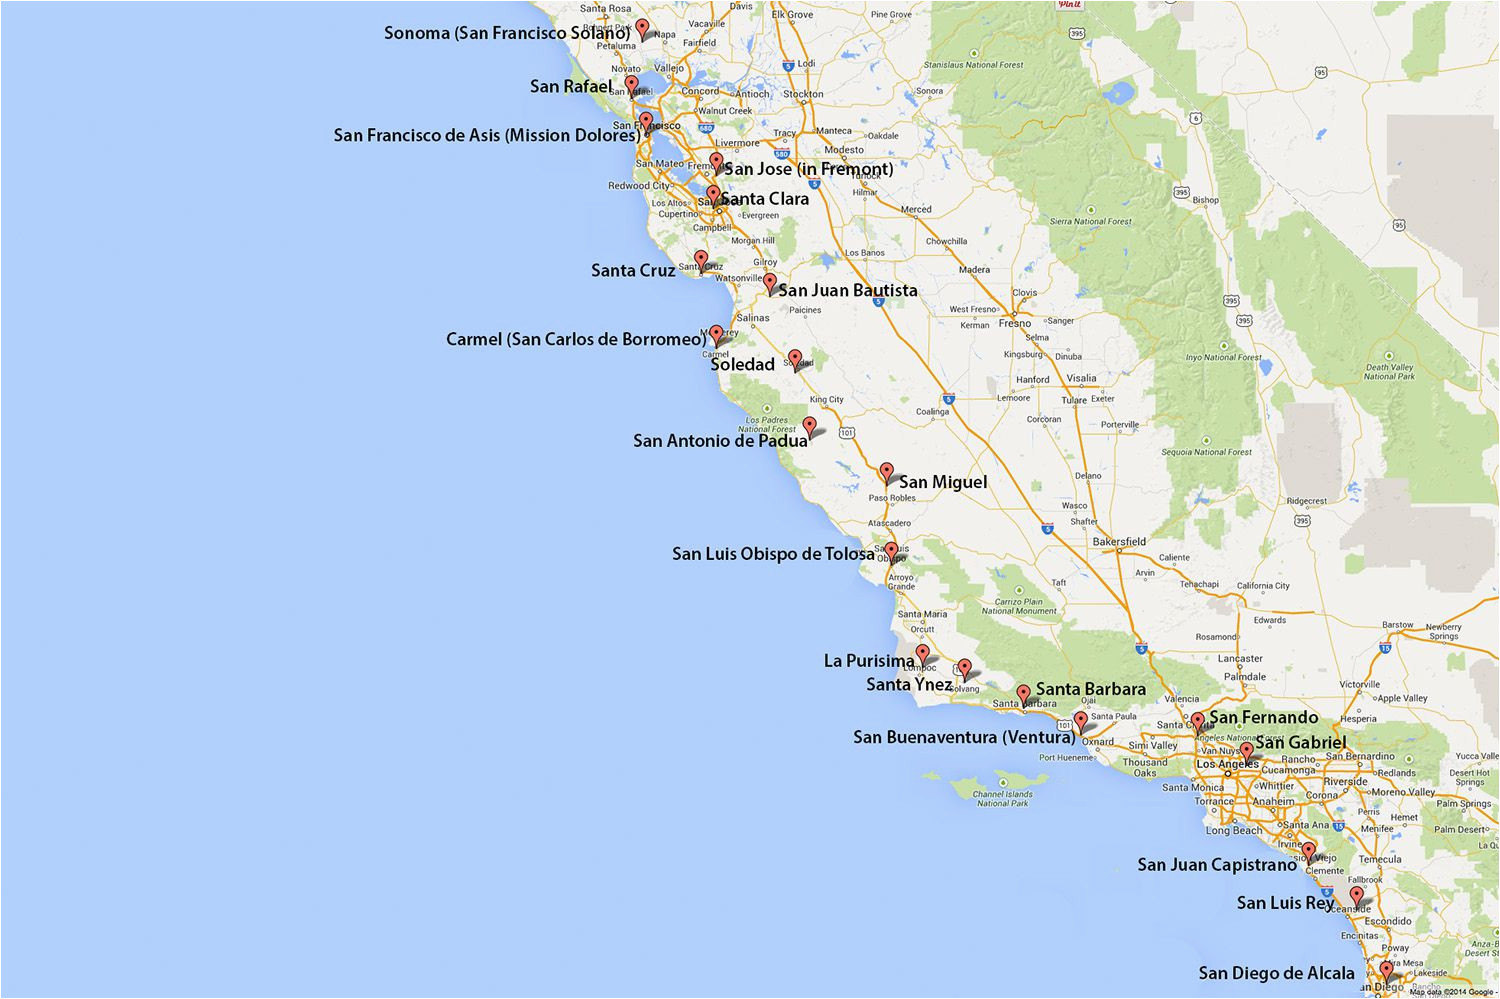 California Power Grid Map Maps Of California Created for Visitors and Travelers